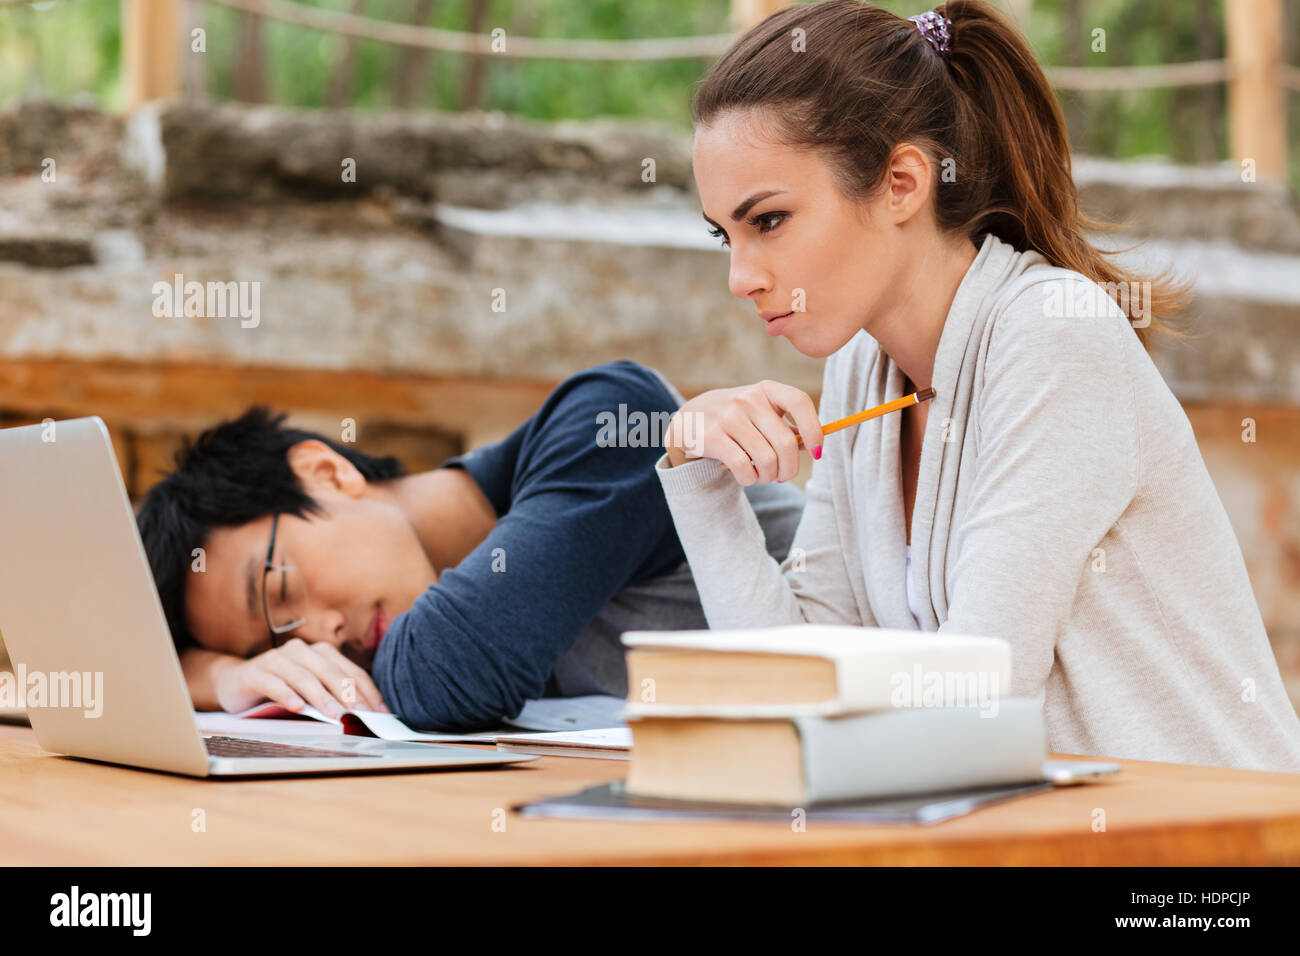 Concentrated young woman sitting and studying near man sleeping on the desk - Stock Image